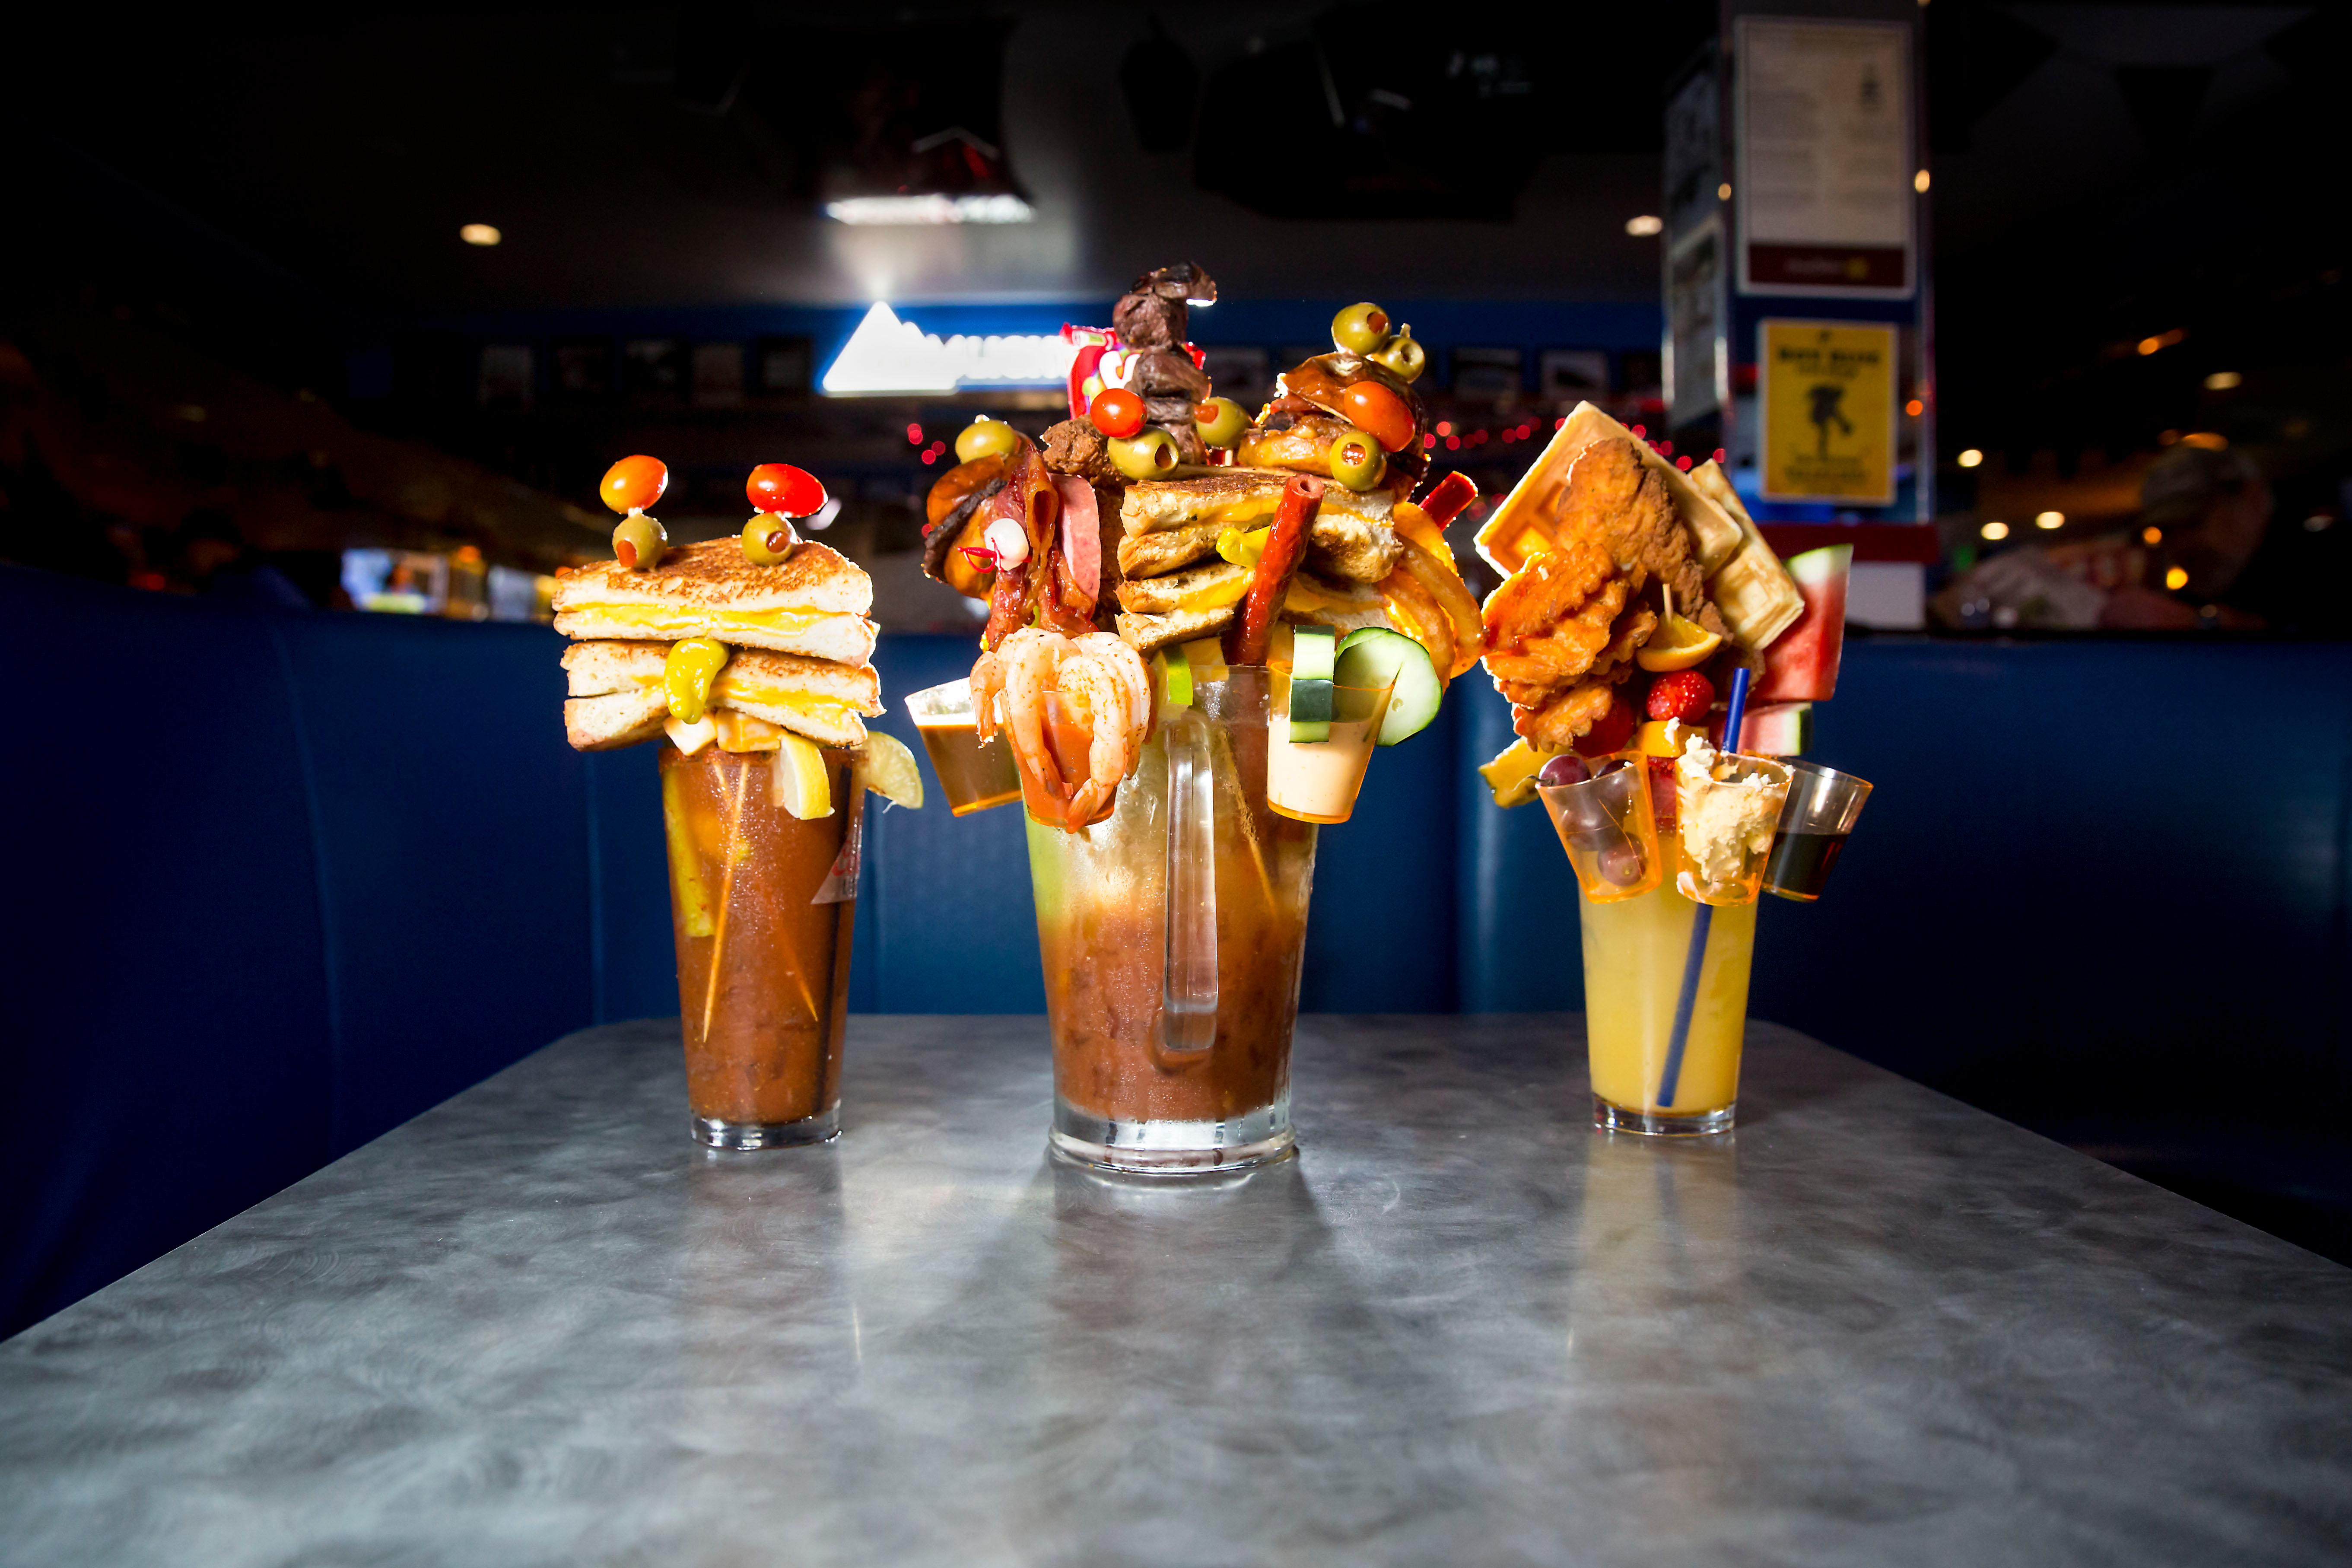 The Southern Bloody Mary (Chicken and Waffles, 22oz Manmosa Base), The Grilled Cheese (22oz Bloody Mary with Grilled Cheese Sandwich and the Big Mother Mary (Full pitcher of bloody mary, grilled cheese sandwich, steak bites, ribs, salami, olives, sliders, onion rings, shrimp cocktail, fried shrimp, cucumber, candied bacon bows, and meat stick straws). The Big Mother Mary HAS to be shared by two people. The Garage Bar & Grill in Bremerton, WA. (Sy Bean / Seattle Refined)